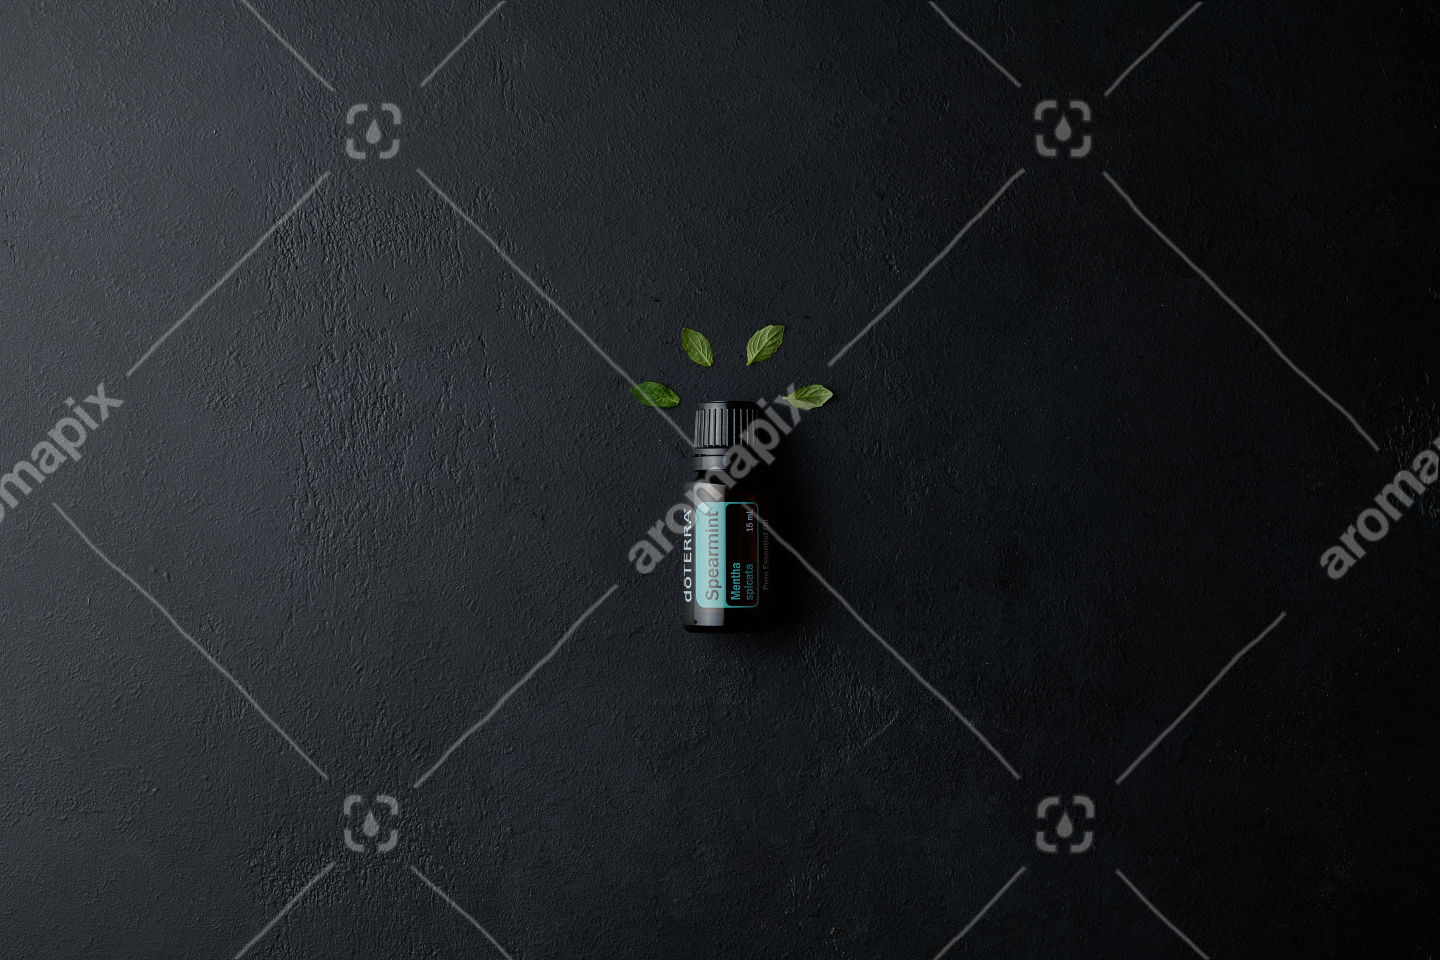 doTERRA Spearmint with mint leaves on black